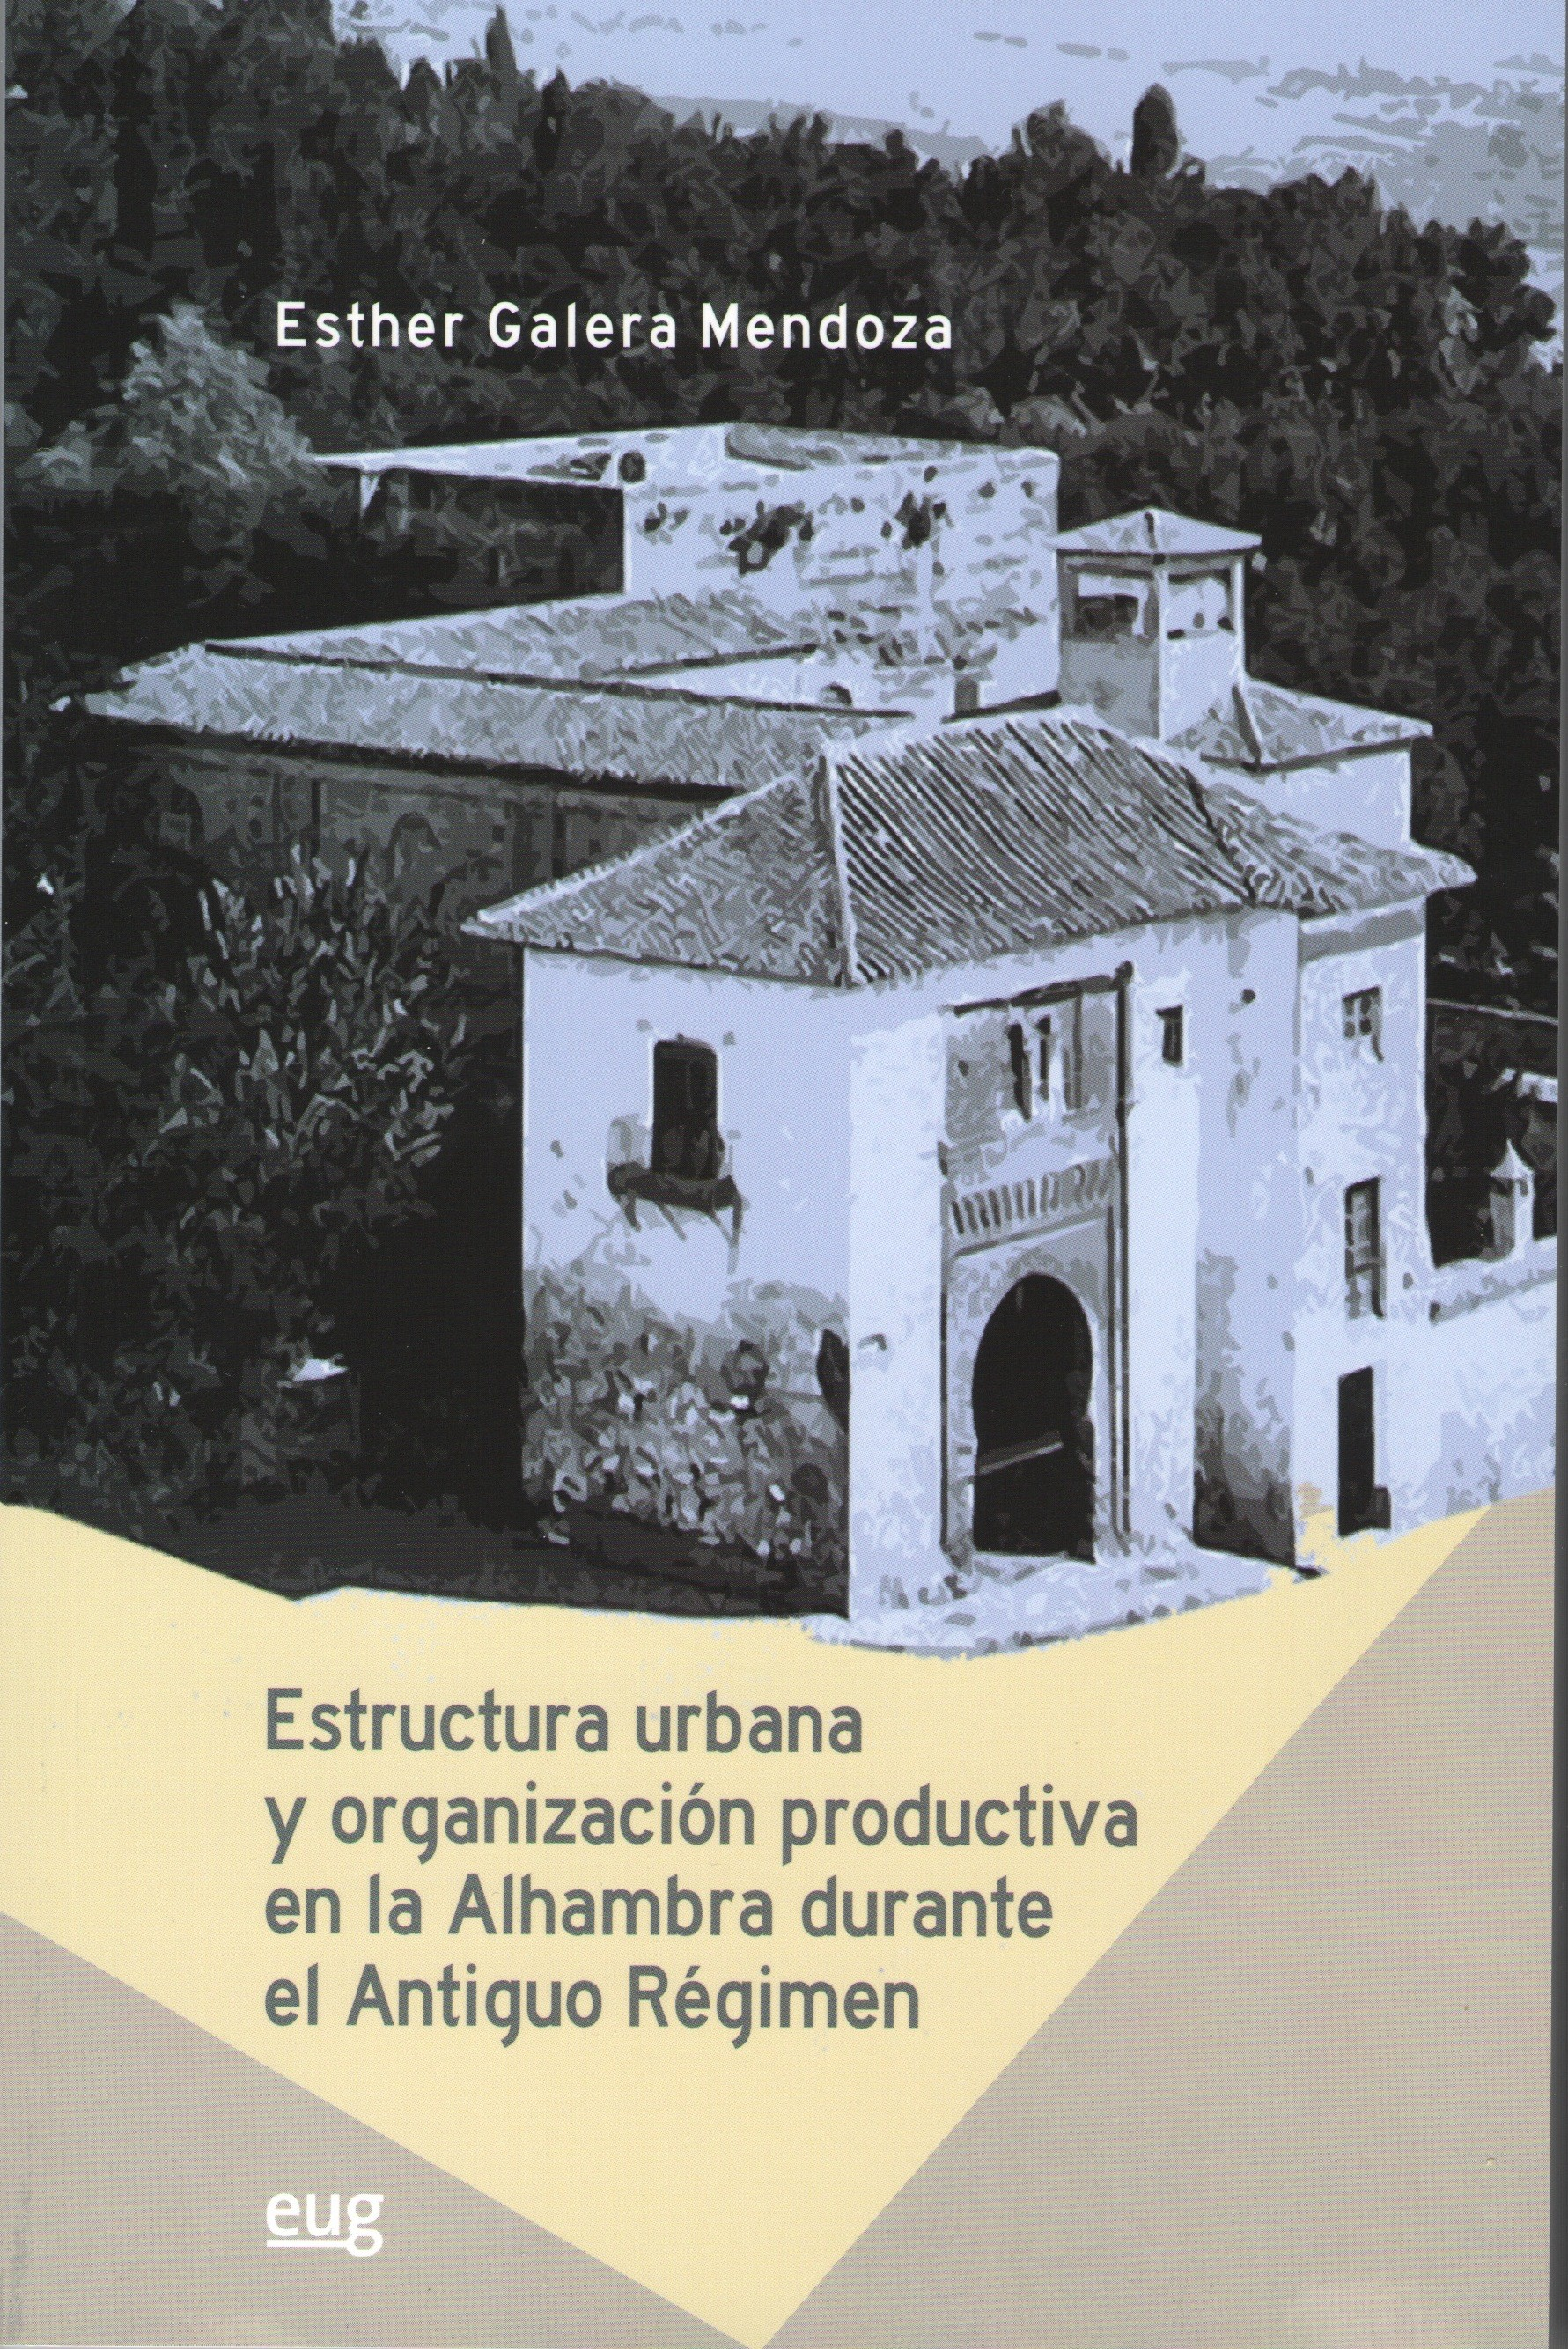 Urban structure and the organization of production in the Alhambra during the Ancien Régime